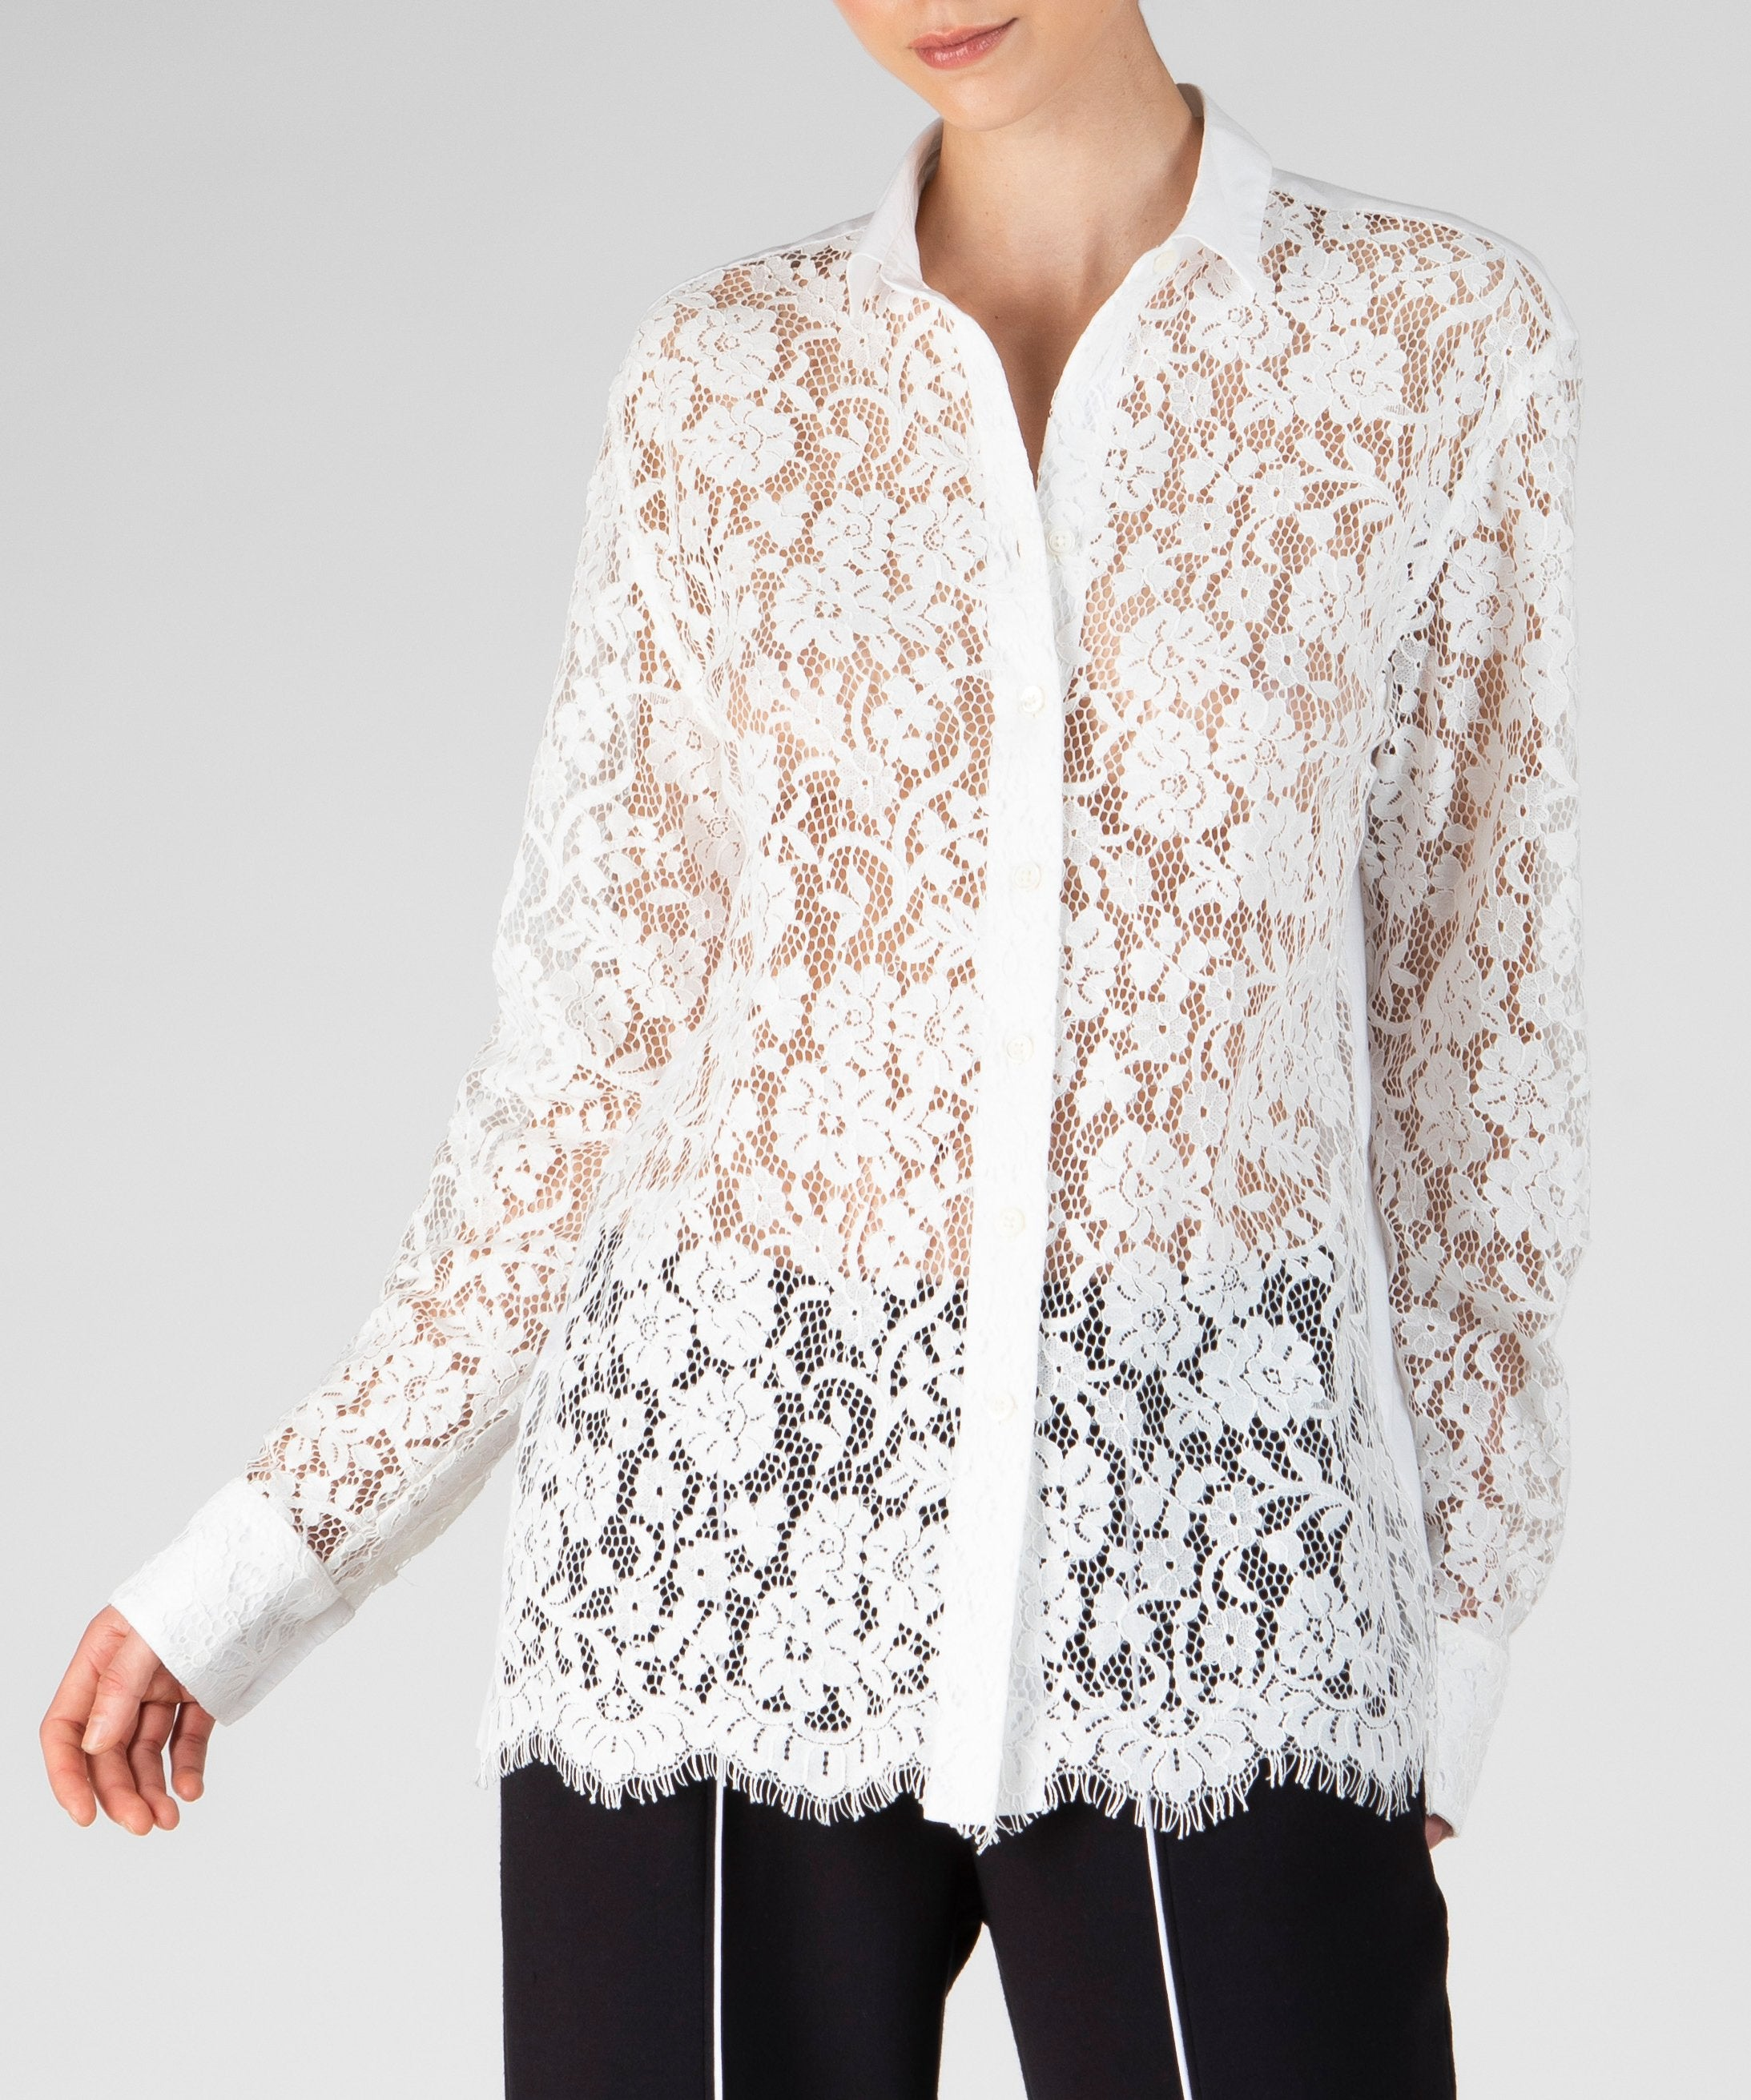 Snow Cotton Lace Shirt - Women's Button Down Shirt by ATM Anthony Thomas Melillo